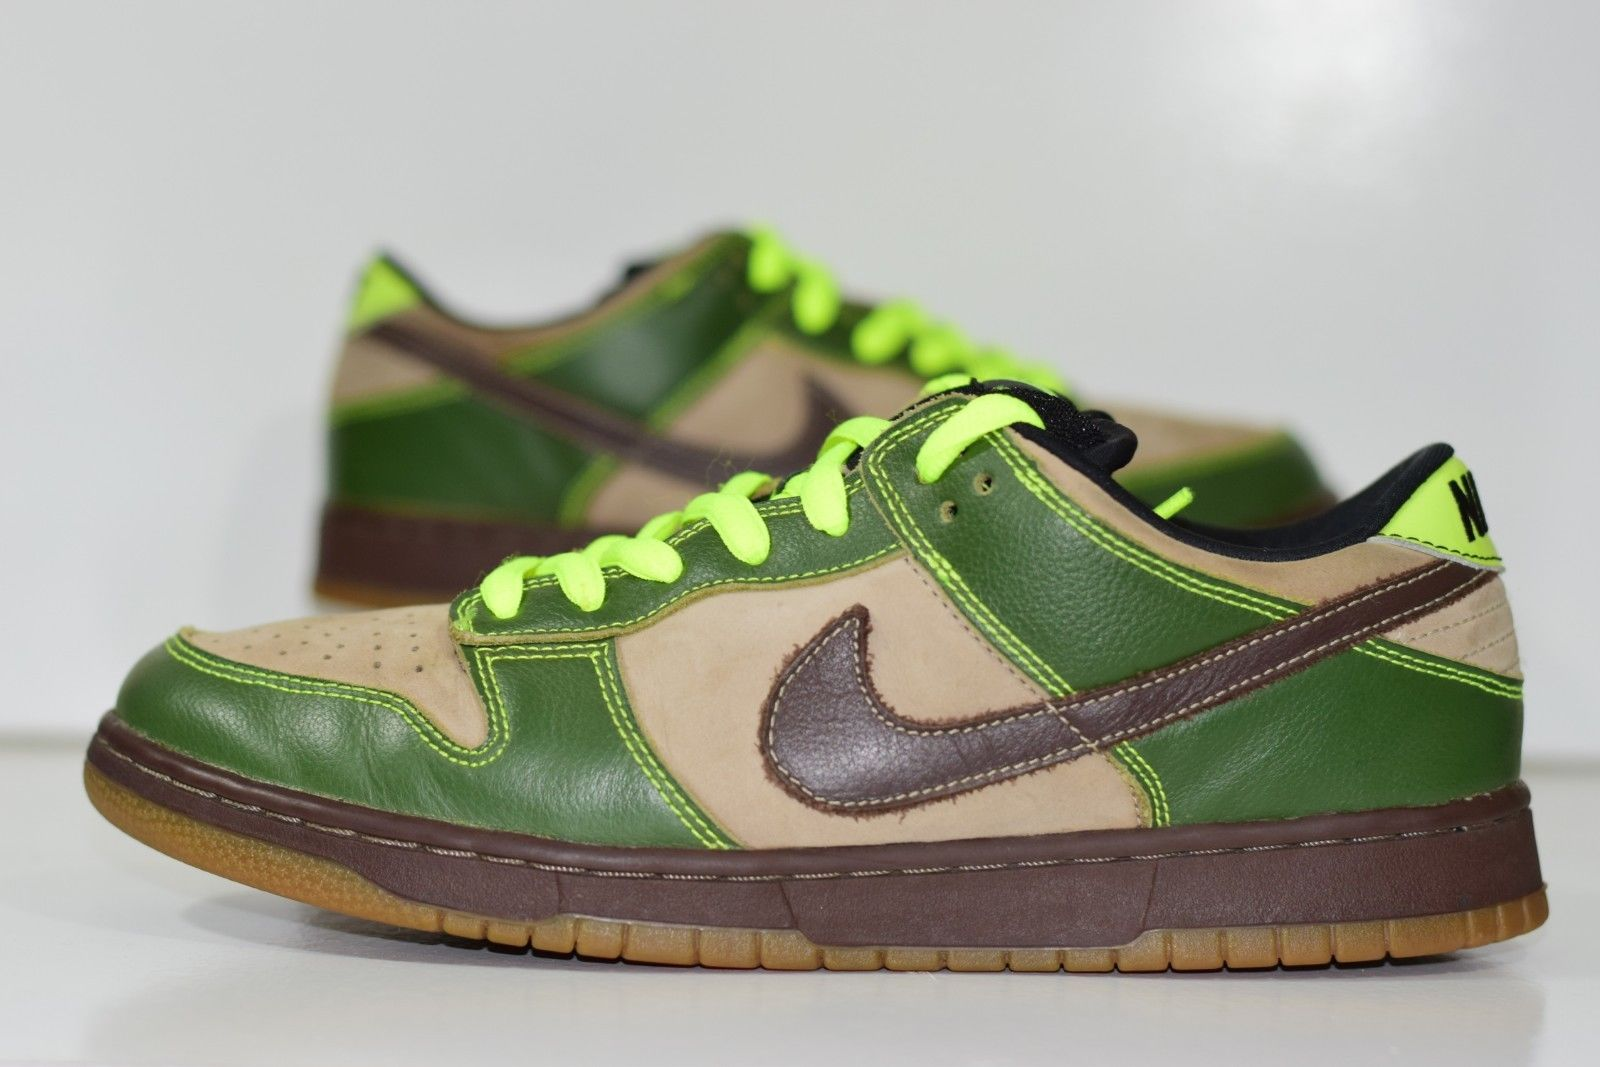 watch 9e638 6cc61 Size 10.5  2004 Nike Dunk Low Pro SB JEDI Star Wars Yoda 304292-